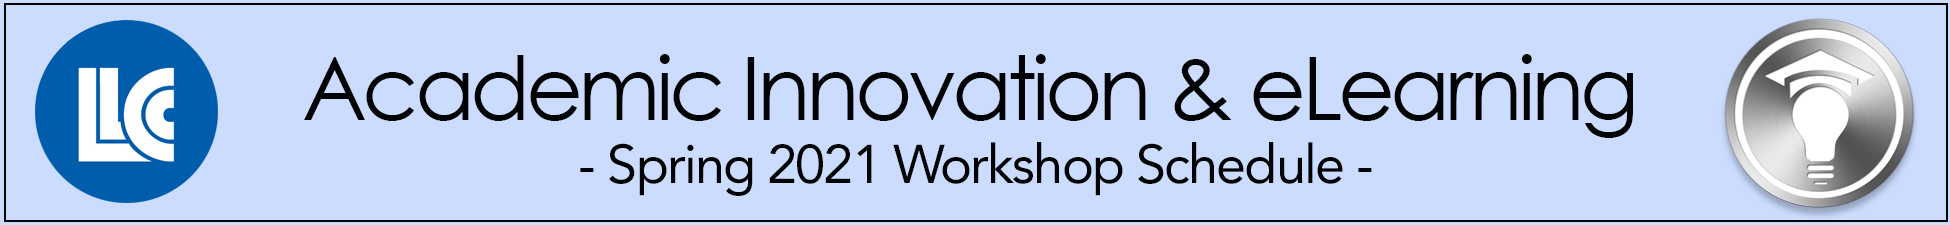 LLCC Academic Innovation & eLearning Spring 2021 Workshop Schedule